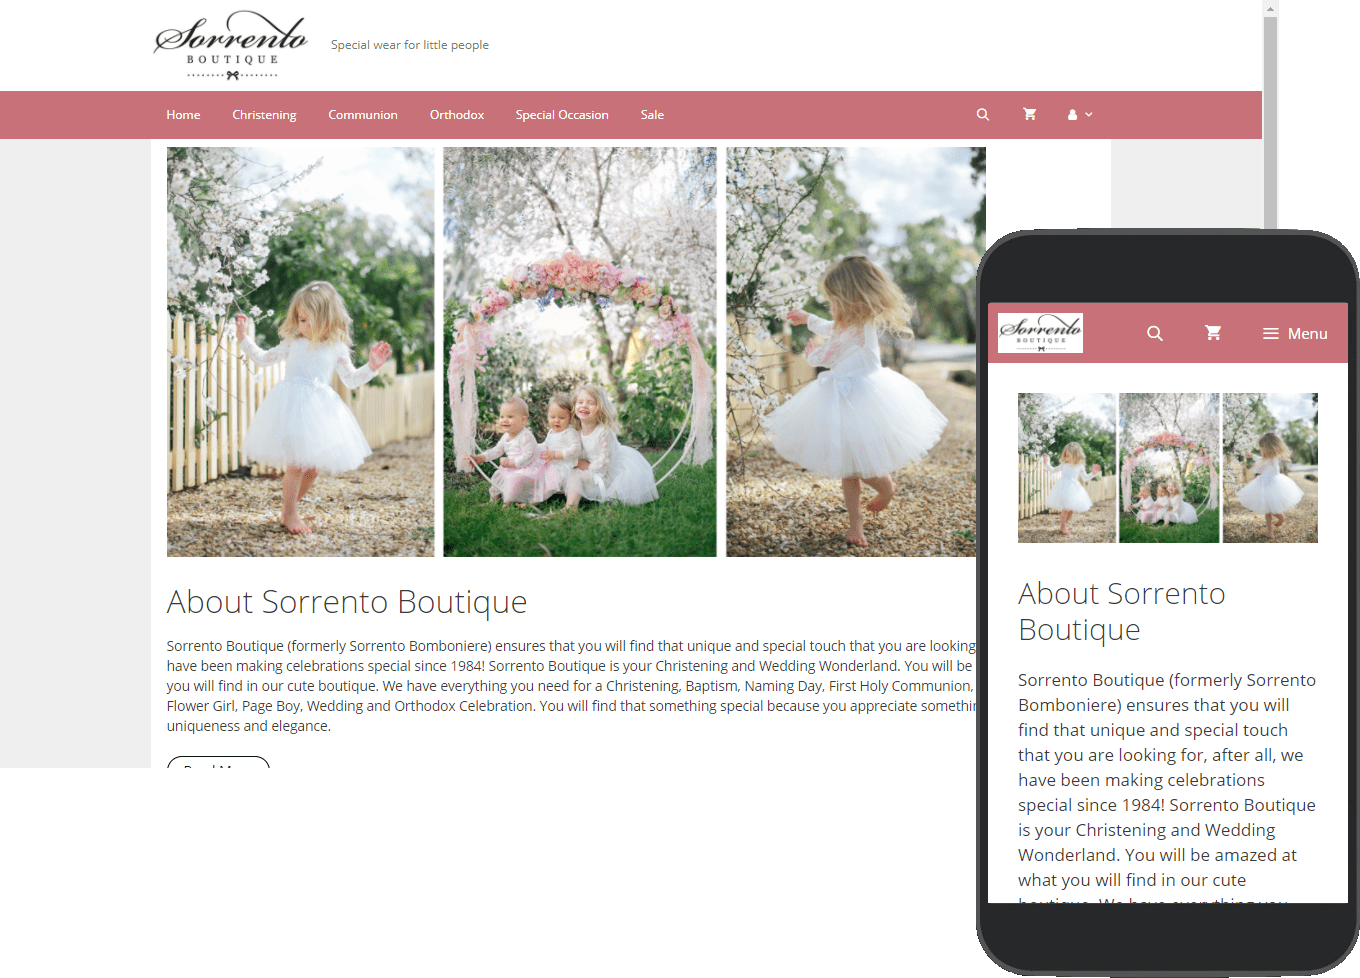 Sorrento Boutique website portfolio images of desktop and mobile view